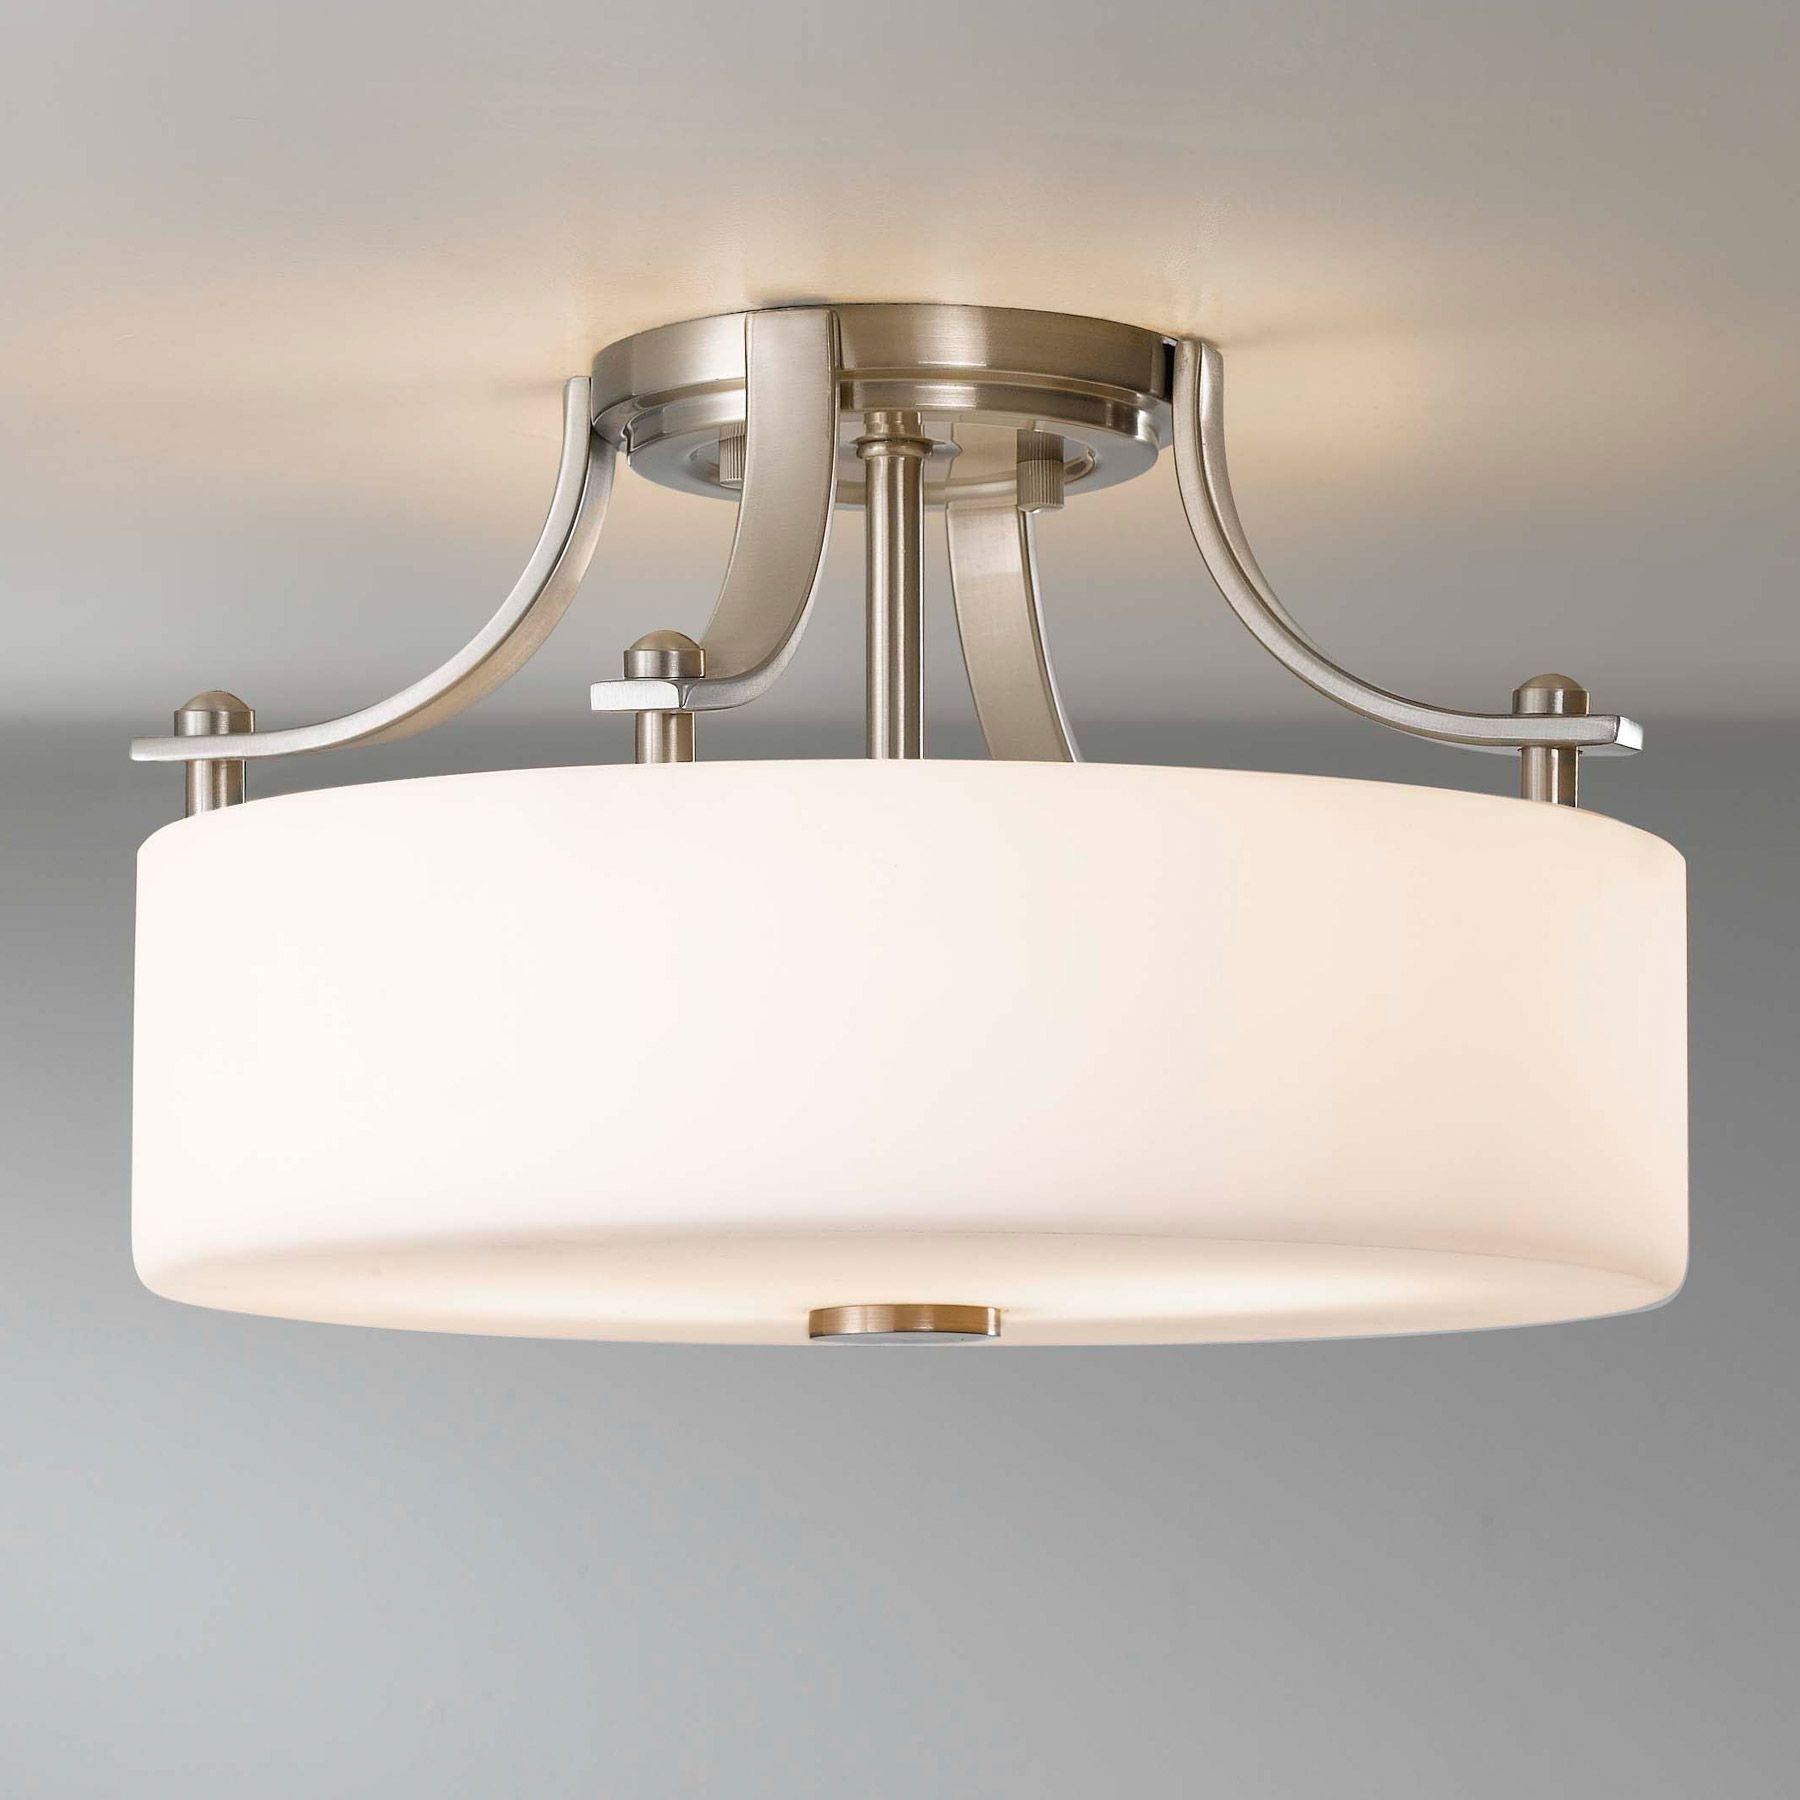 white flushmount light fixture  flush mount ceiling light  - white flushmount light fixture